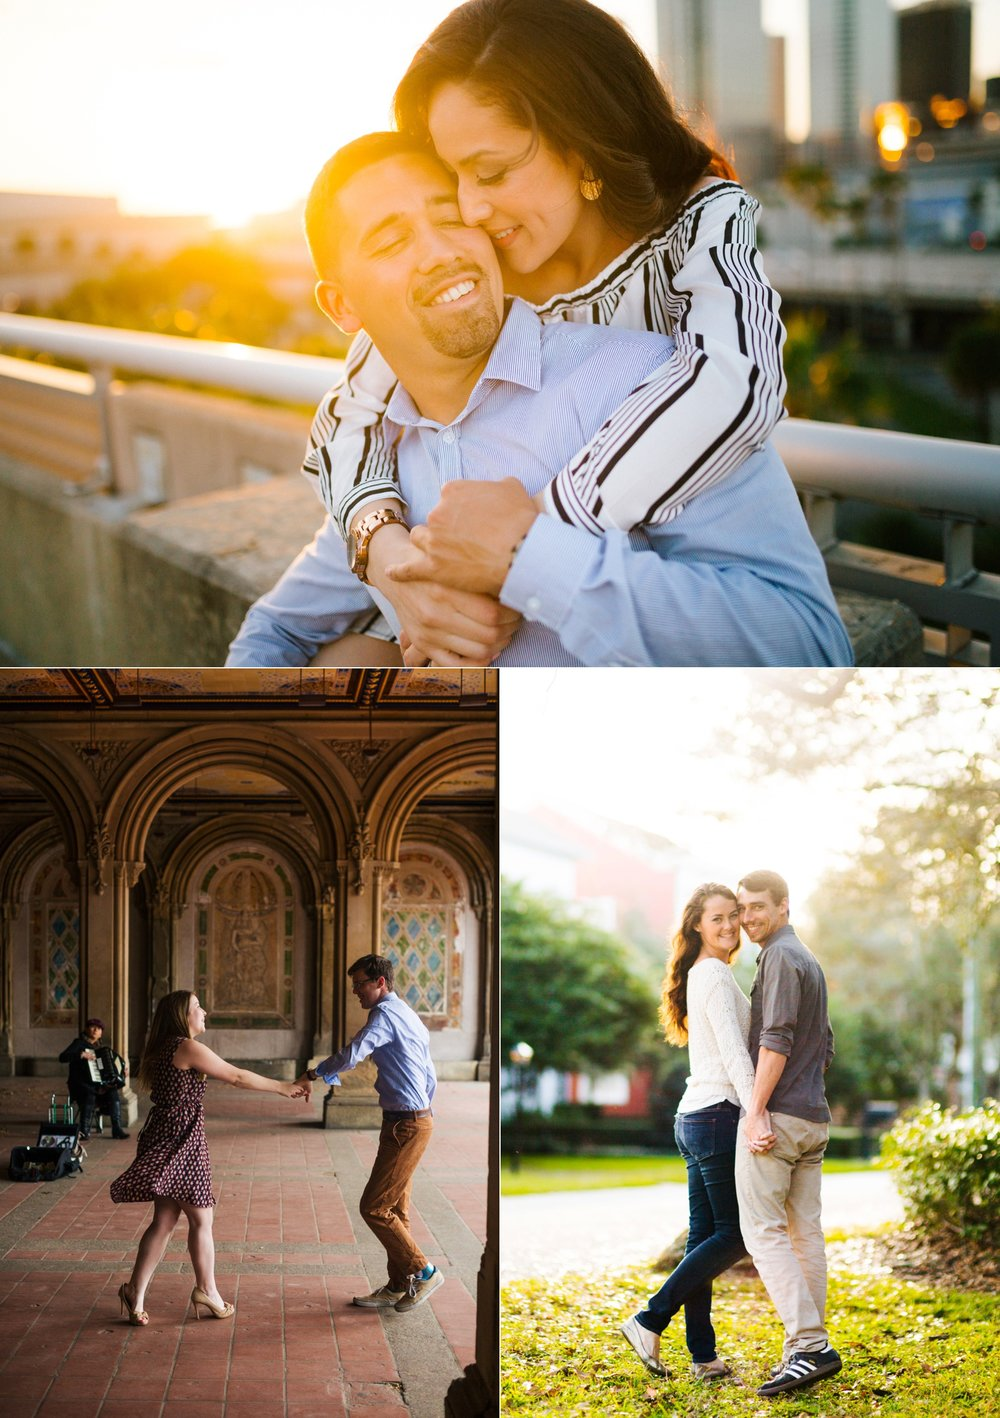 Jake & Katie Photography Best of Couples 2016-008.jpg